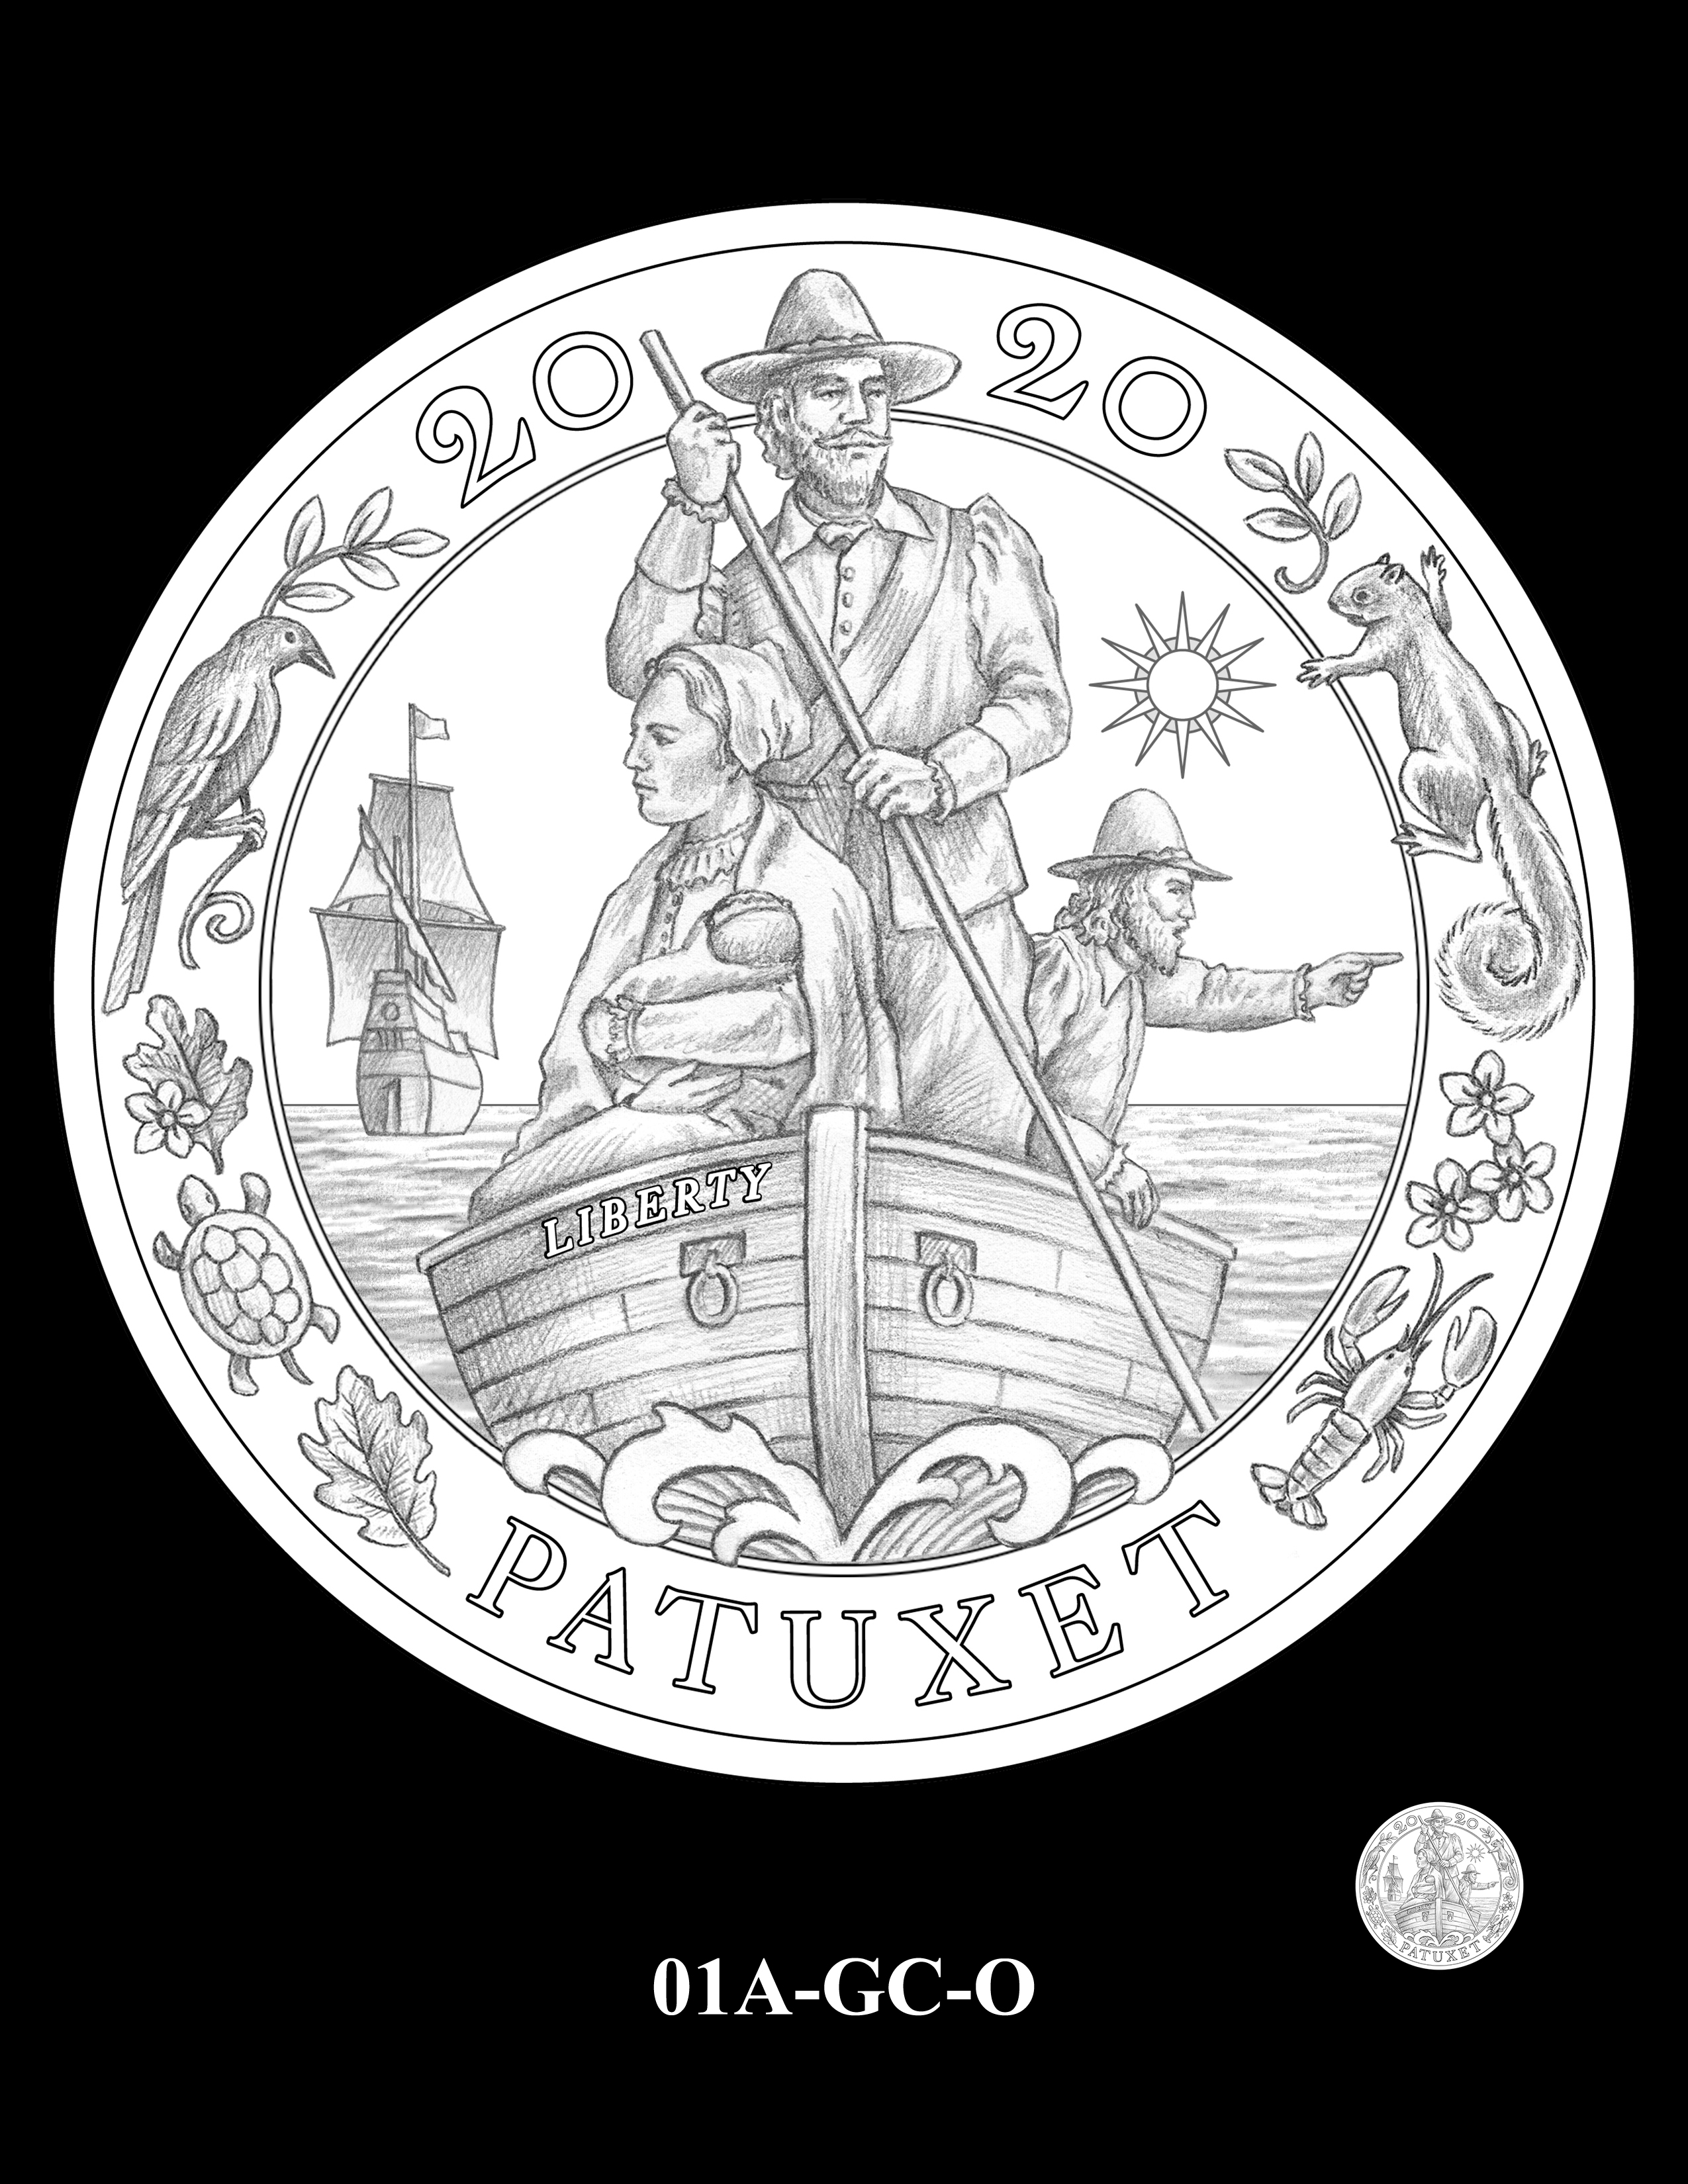 01A-GC-O - 2020  Mayflower 400th Anniversary 24K Gold Coin & Silver Medal Program